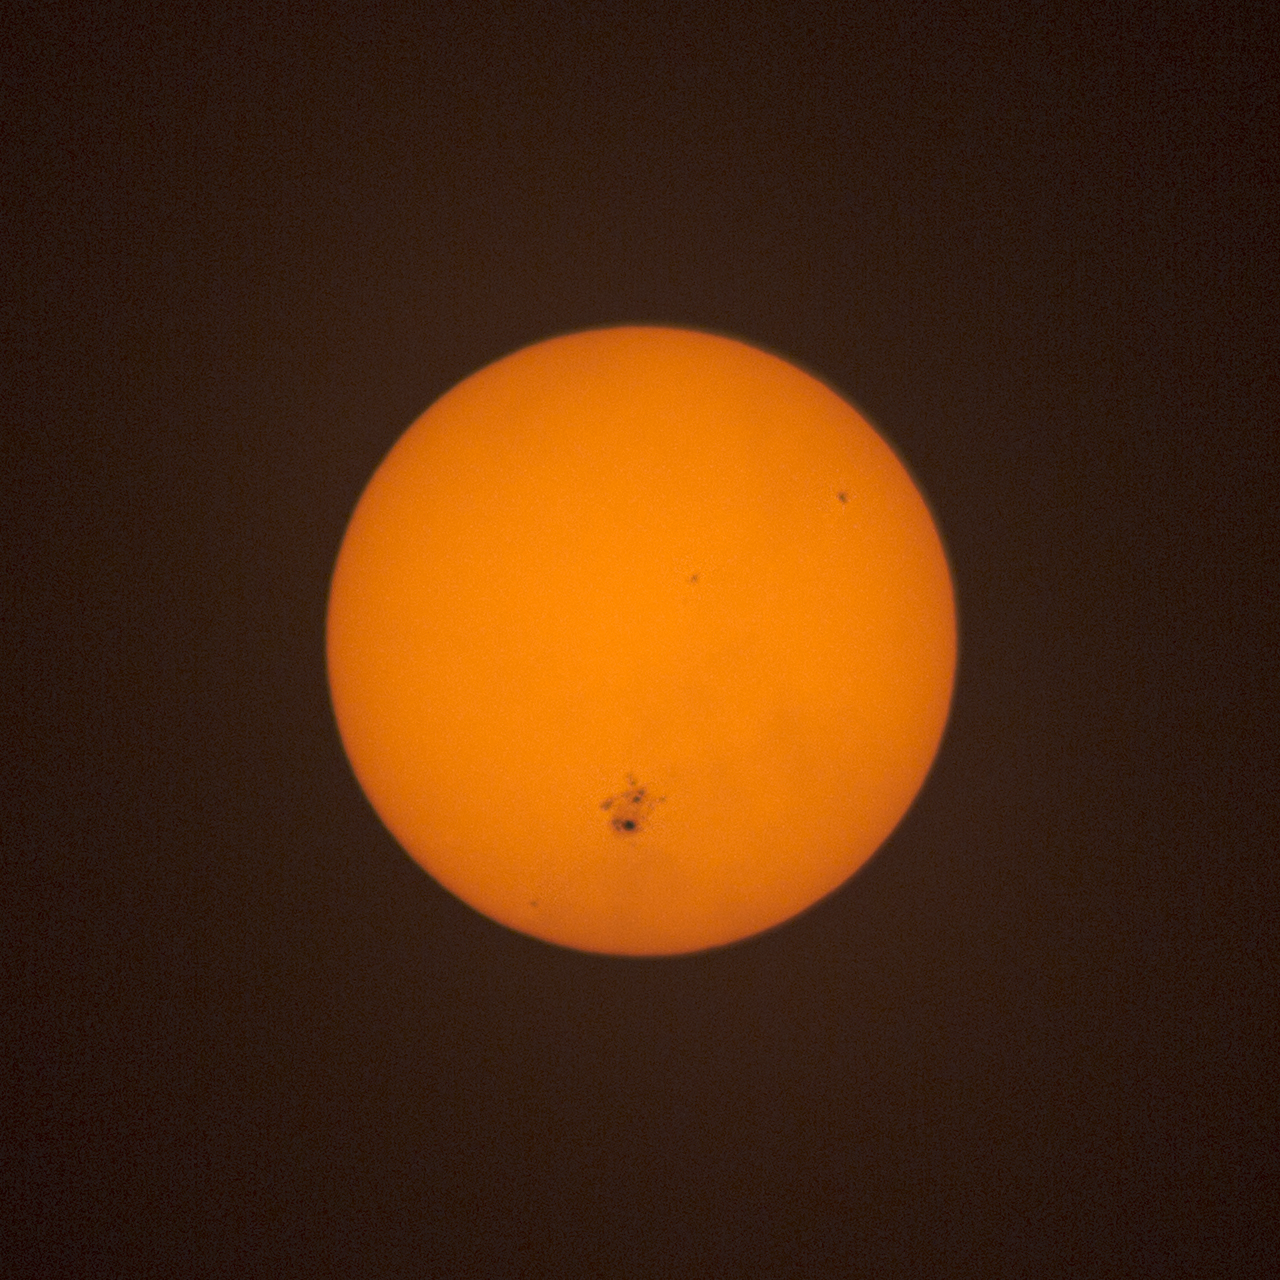 sunspot october 21